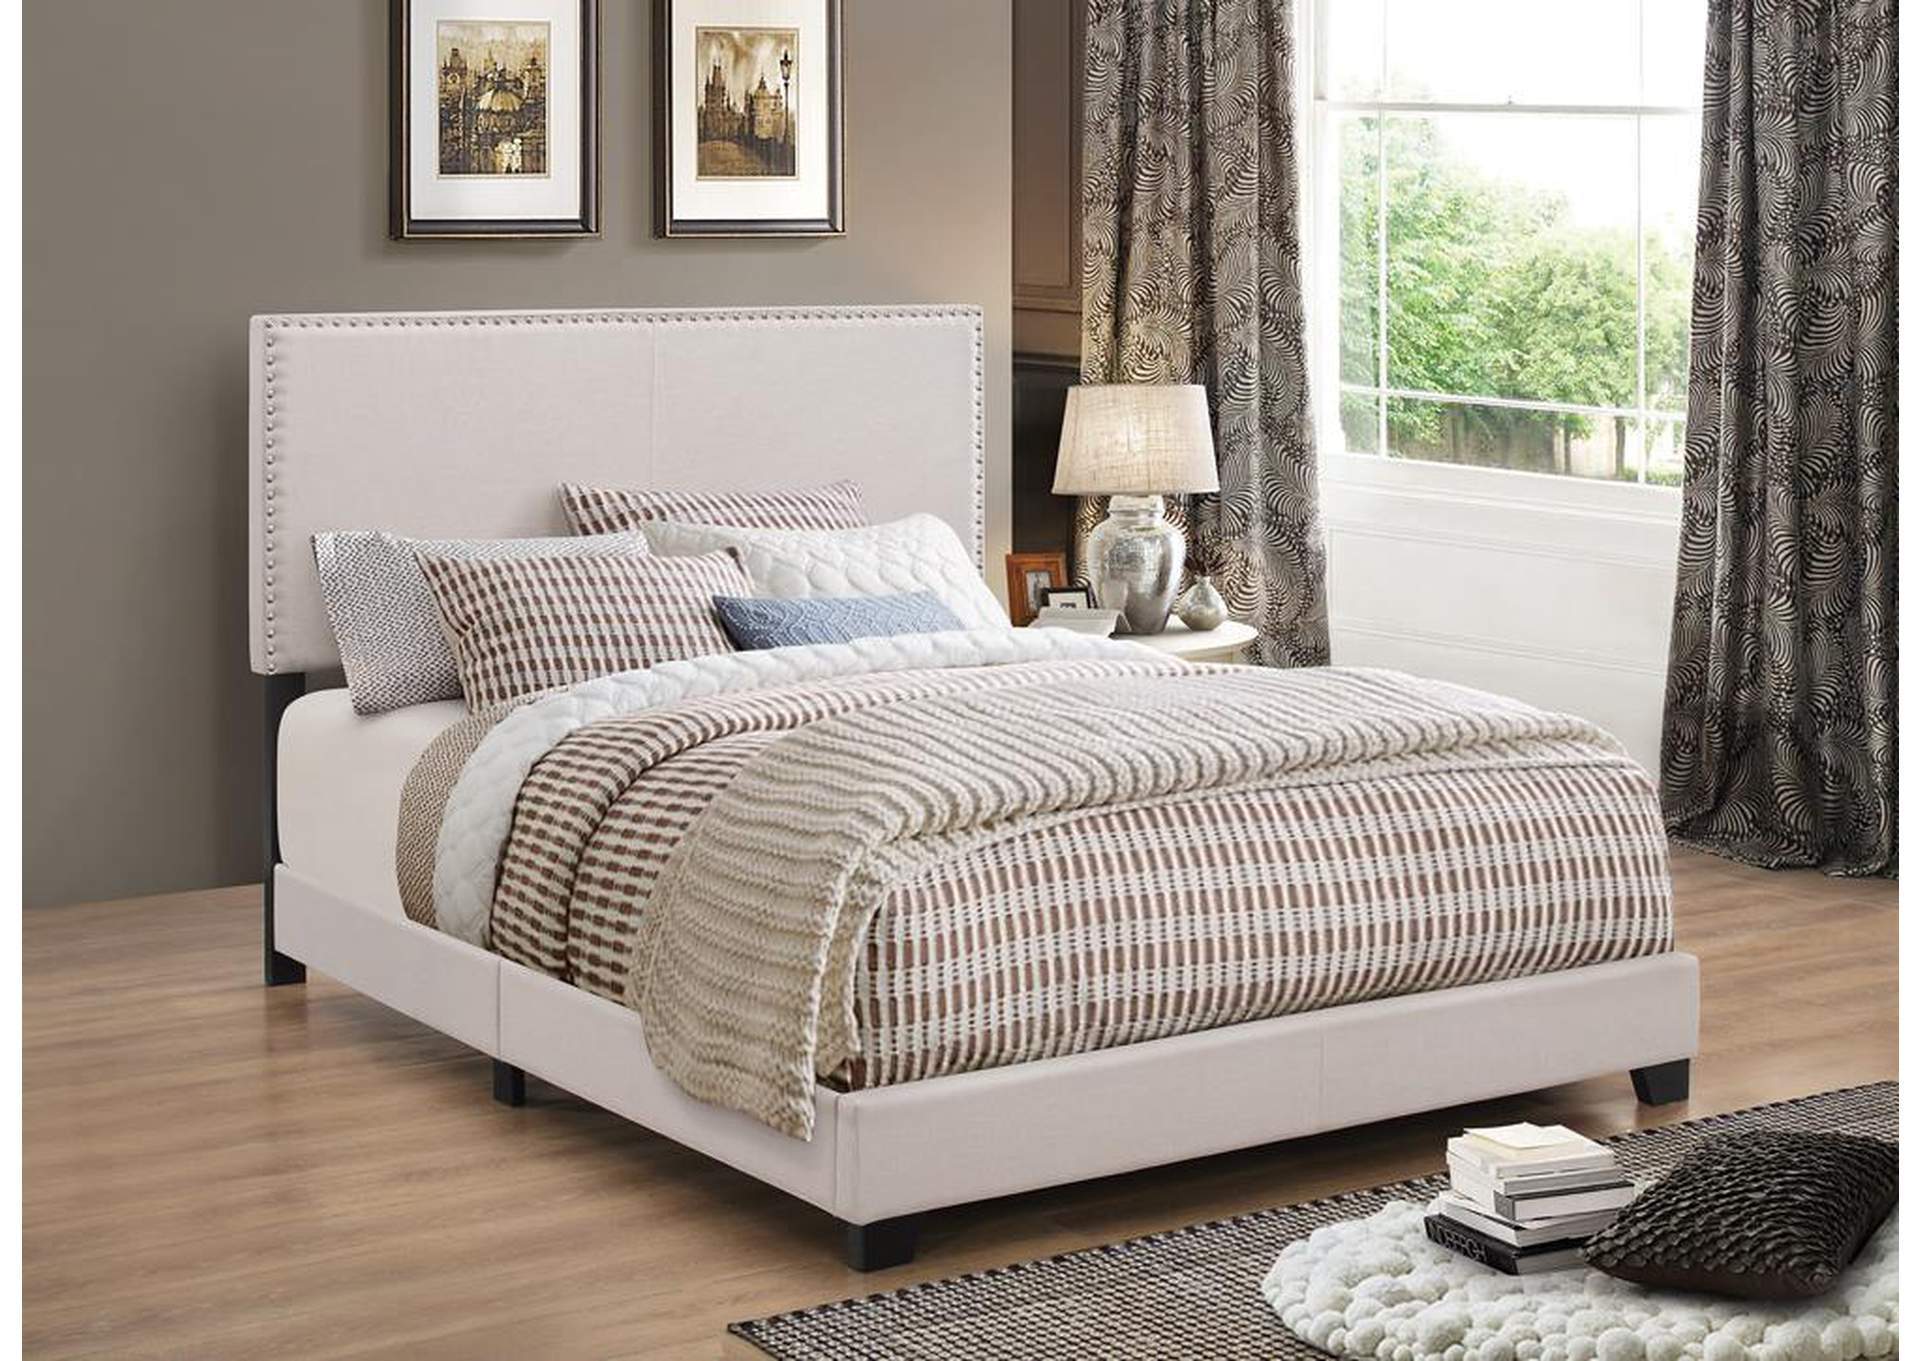 Boyd Ivory Queen Upholstered Platform Bed,Coaster Furniture